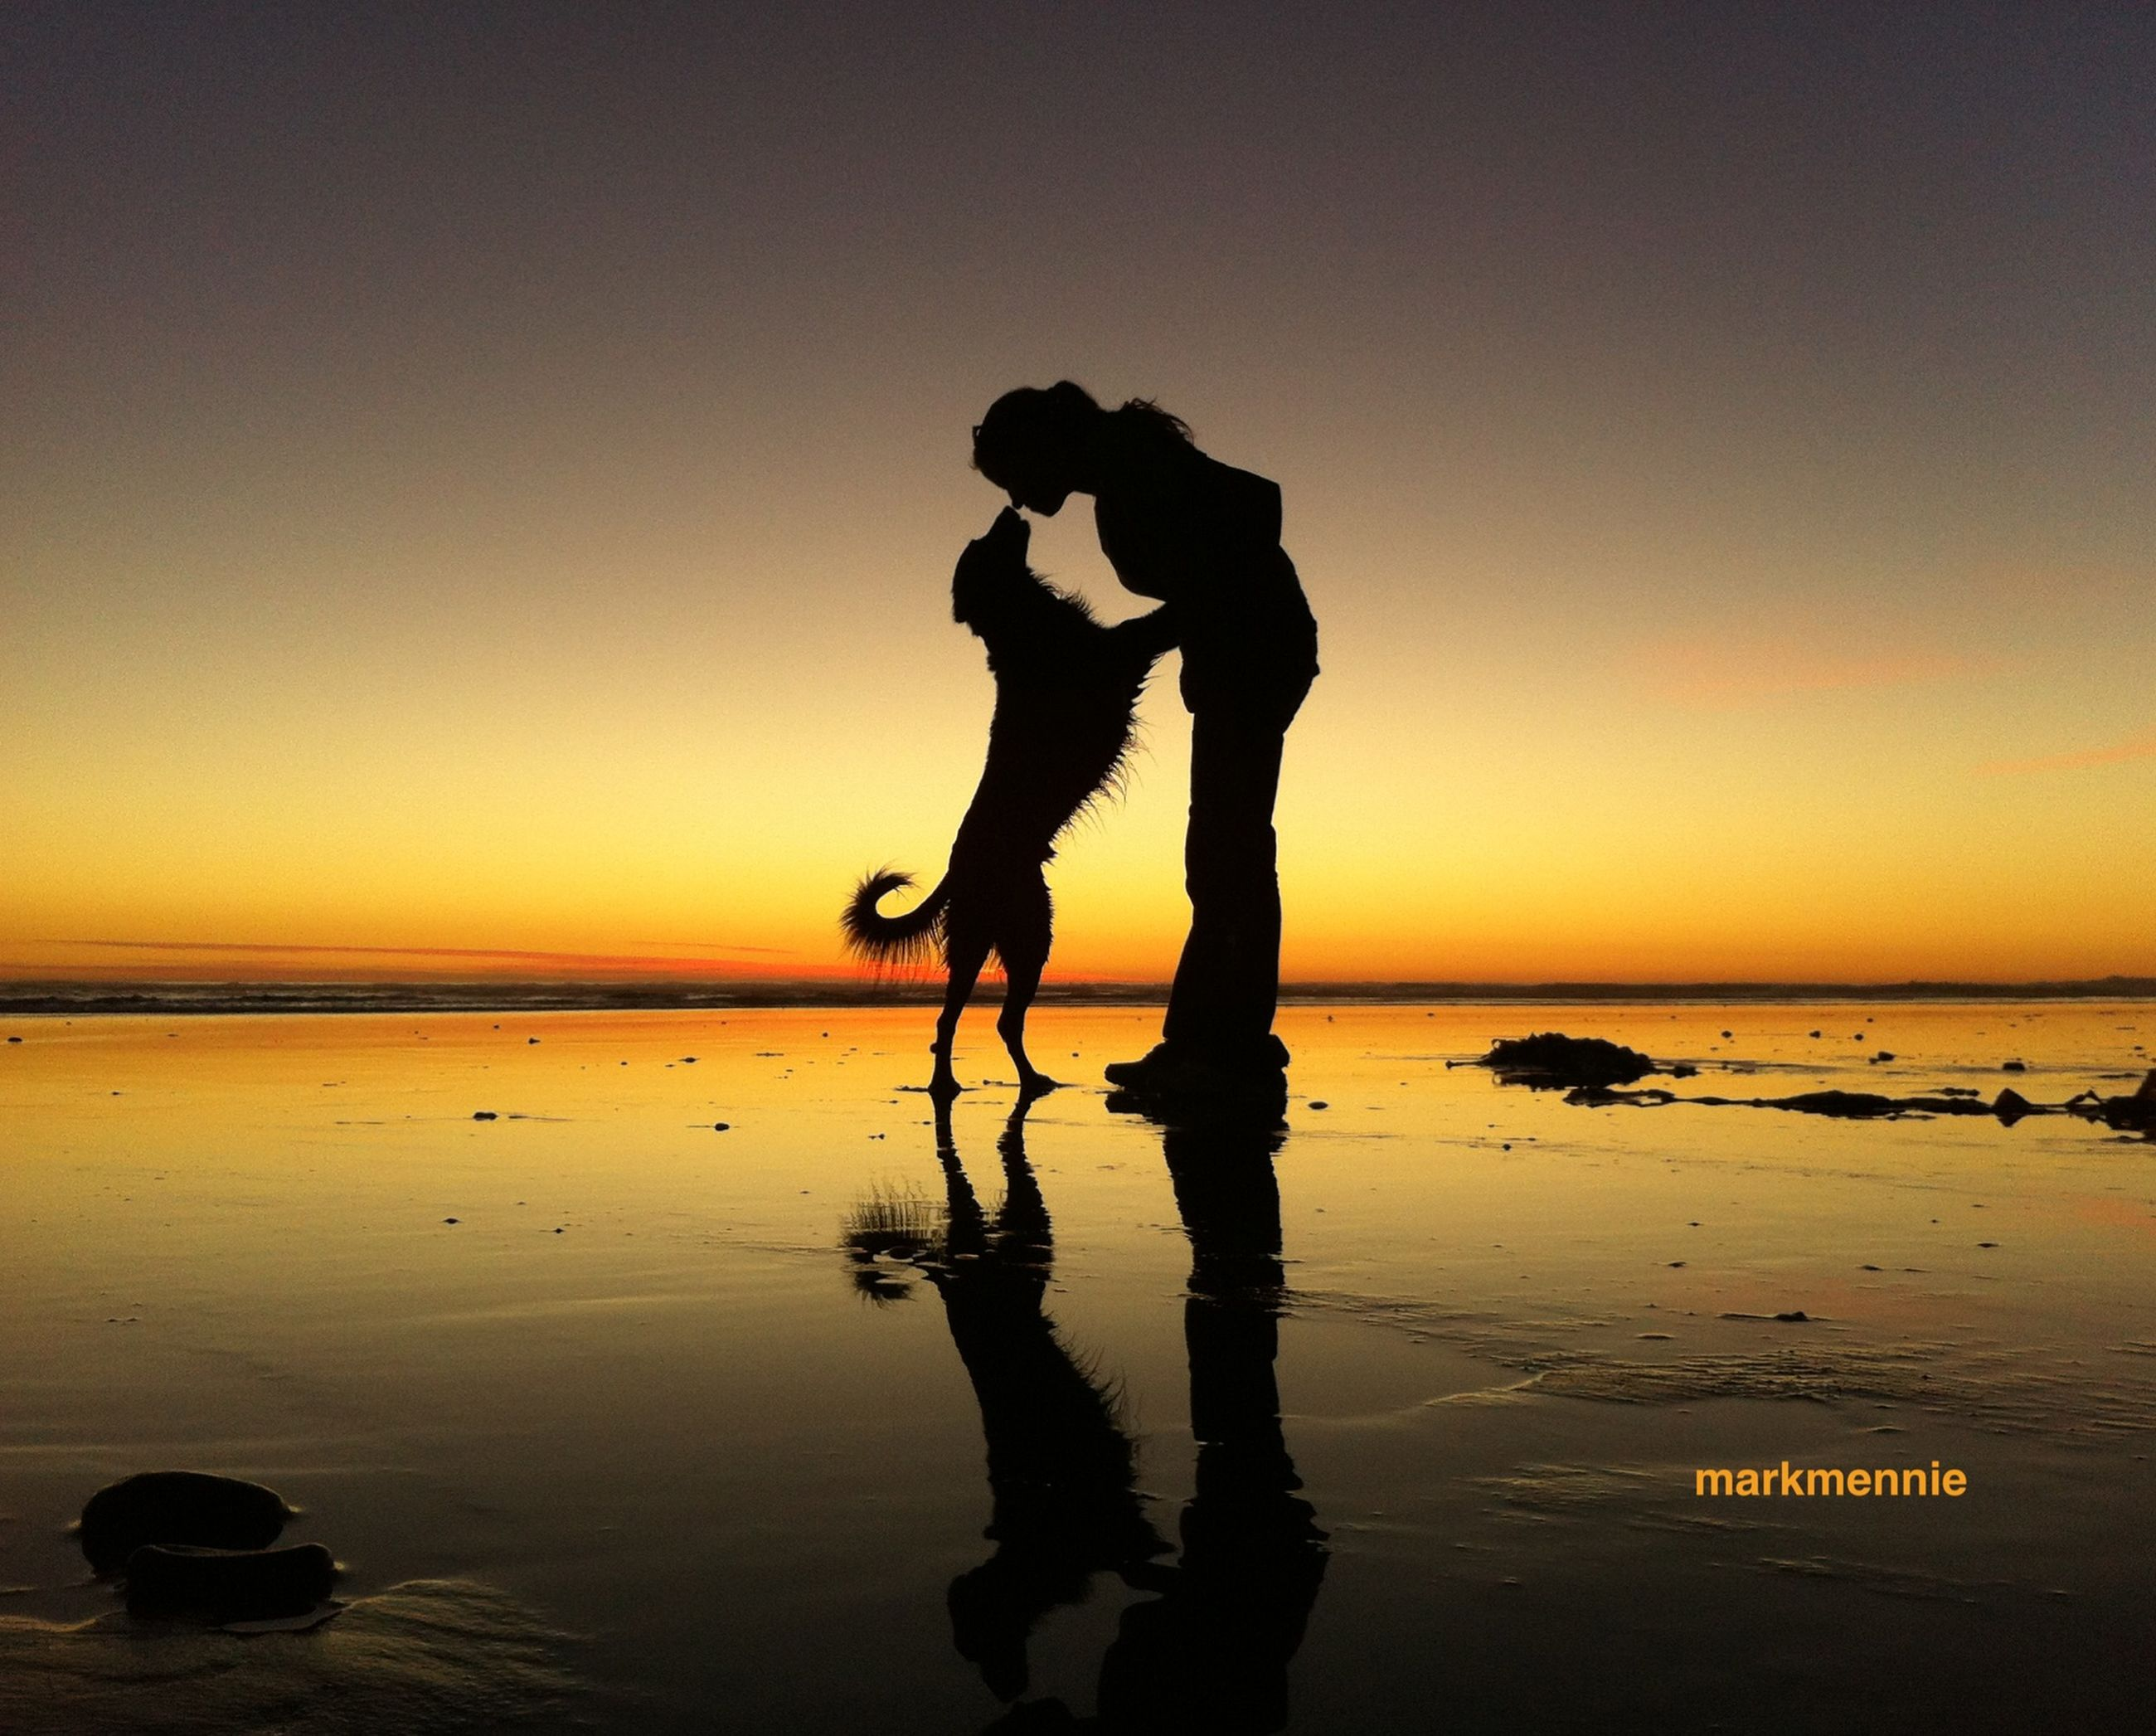 sea, sunset, water, beach, horizon over water, silhouette, lifestyles, leisure activity, shore, full length, men, standing, vacations, tranquility, sky, scenics, tranquil scene, reflection